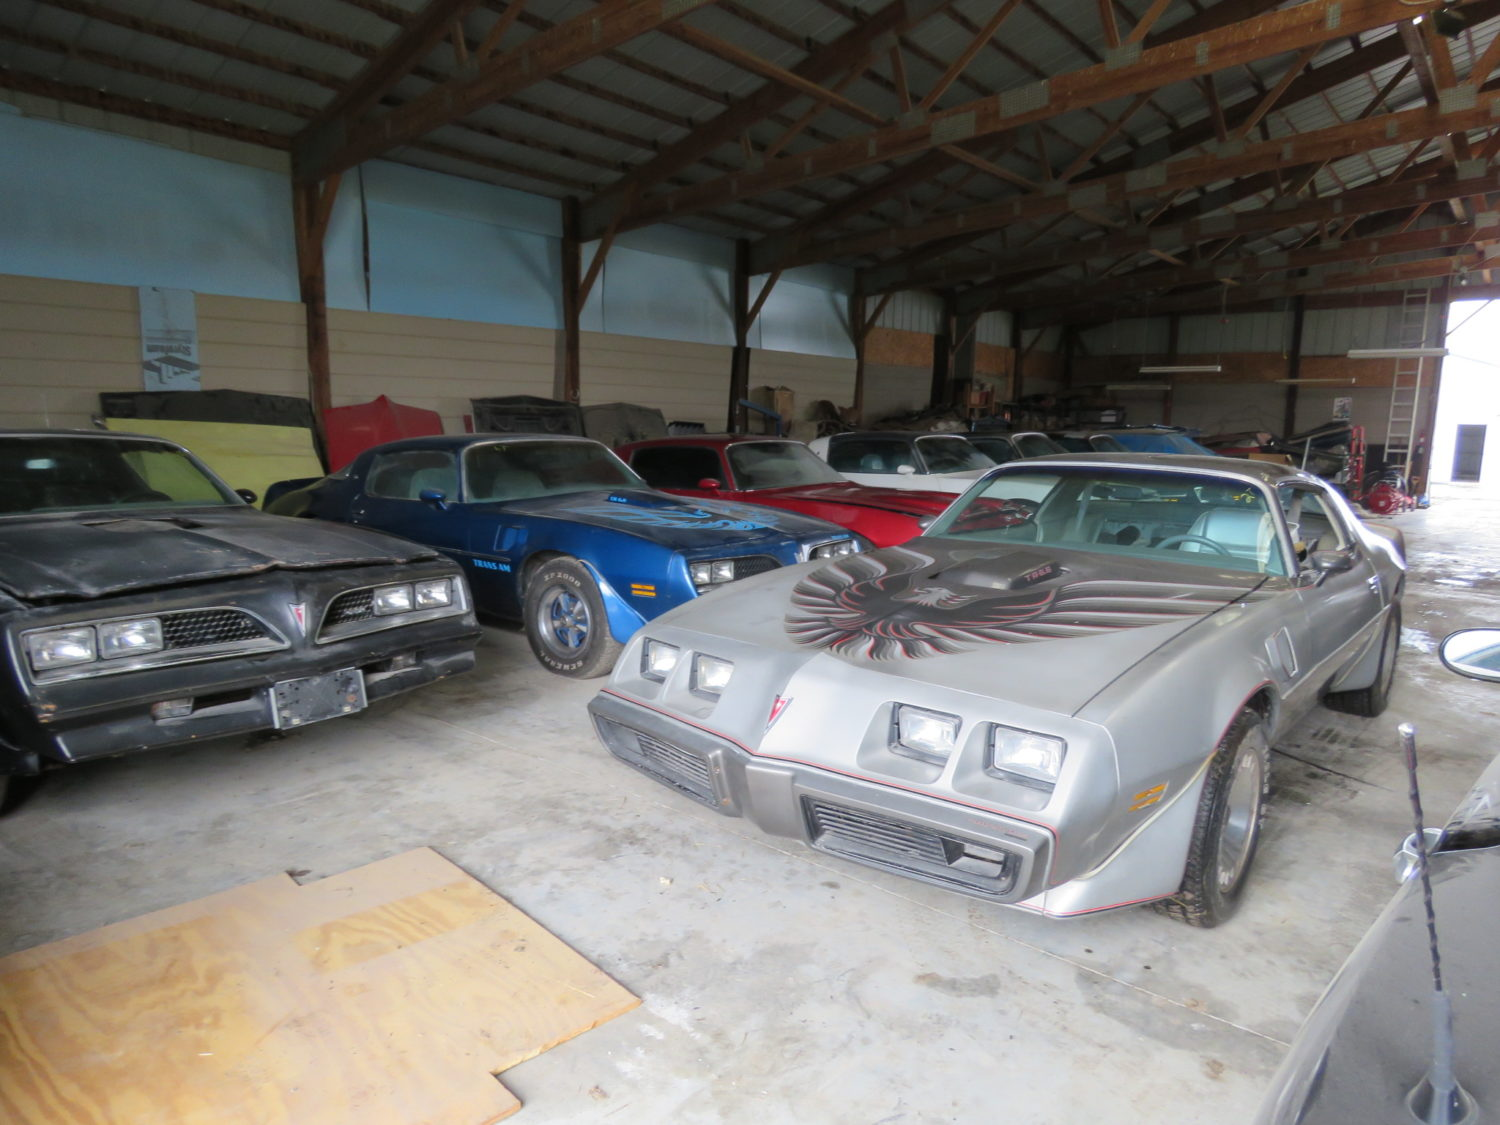 Amazing Trans Am & Pontiac Cars and Parts Hoard! The Kansas Collection - image 1